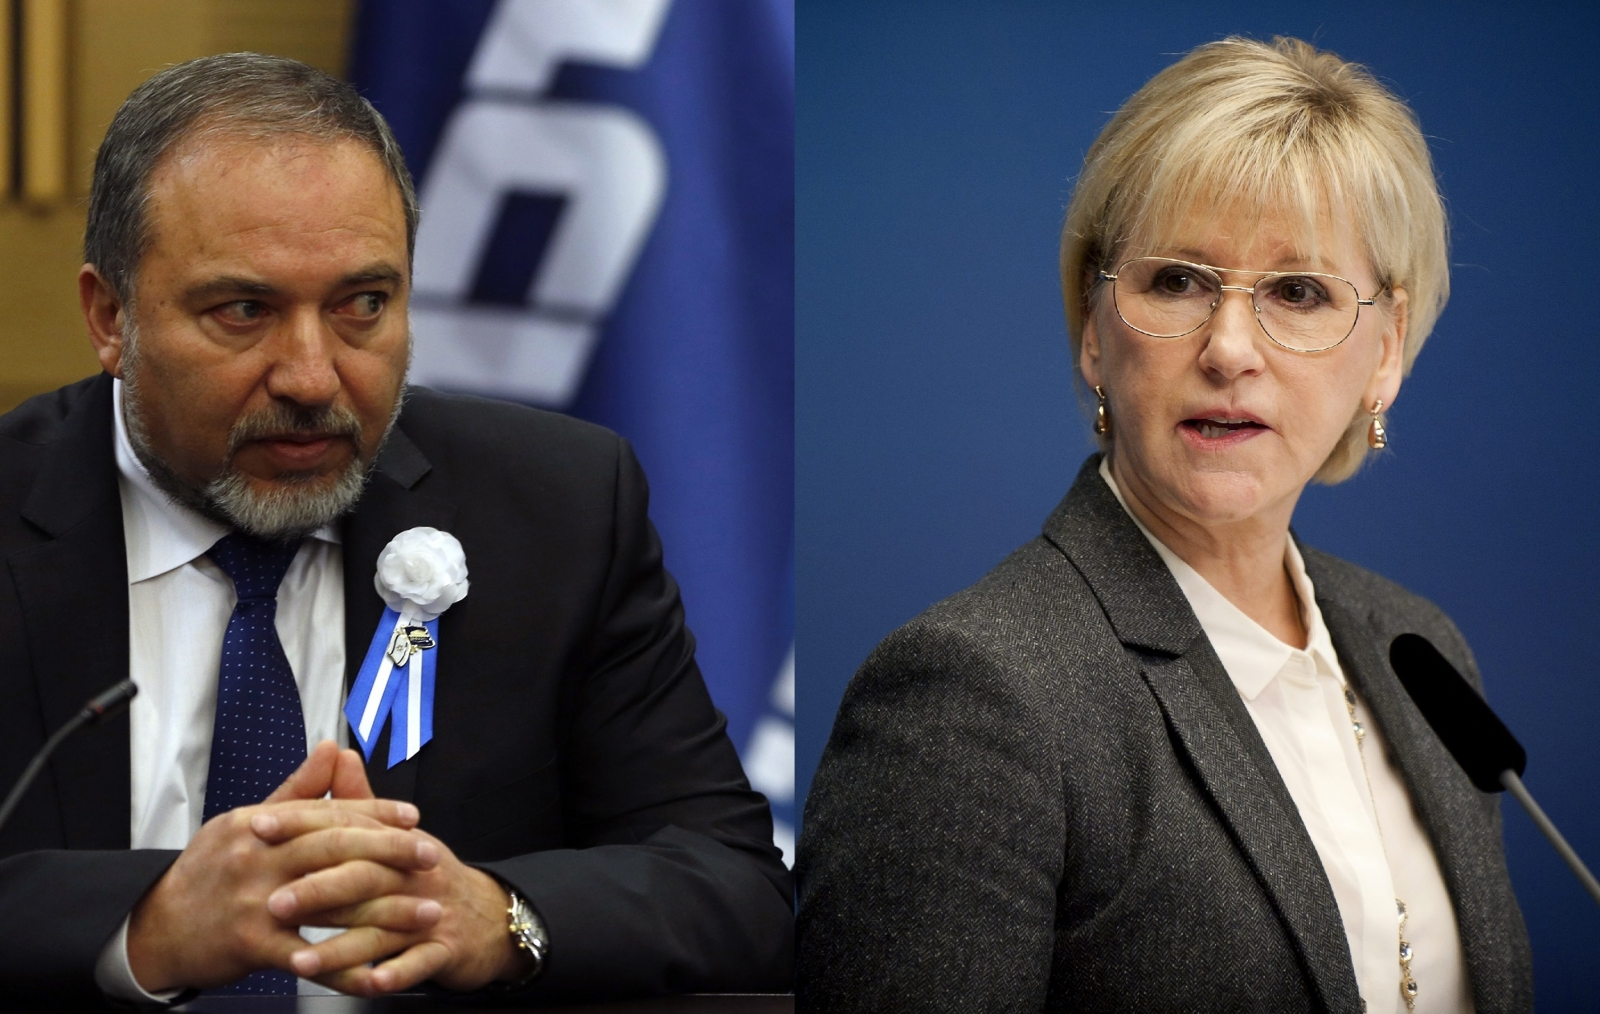 Avigdor Lieberman Margot Wallstrom